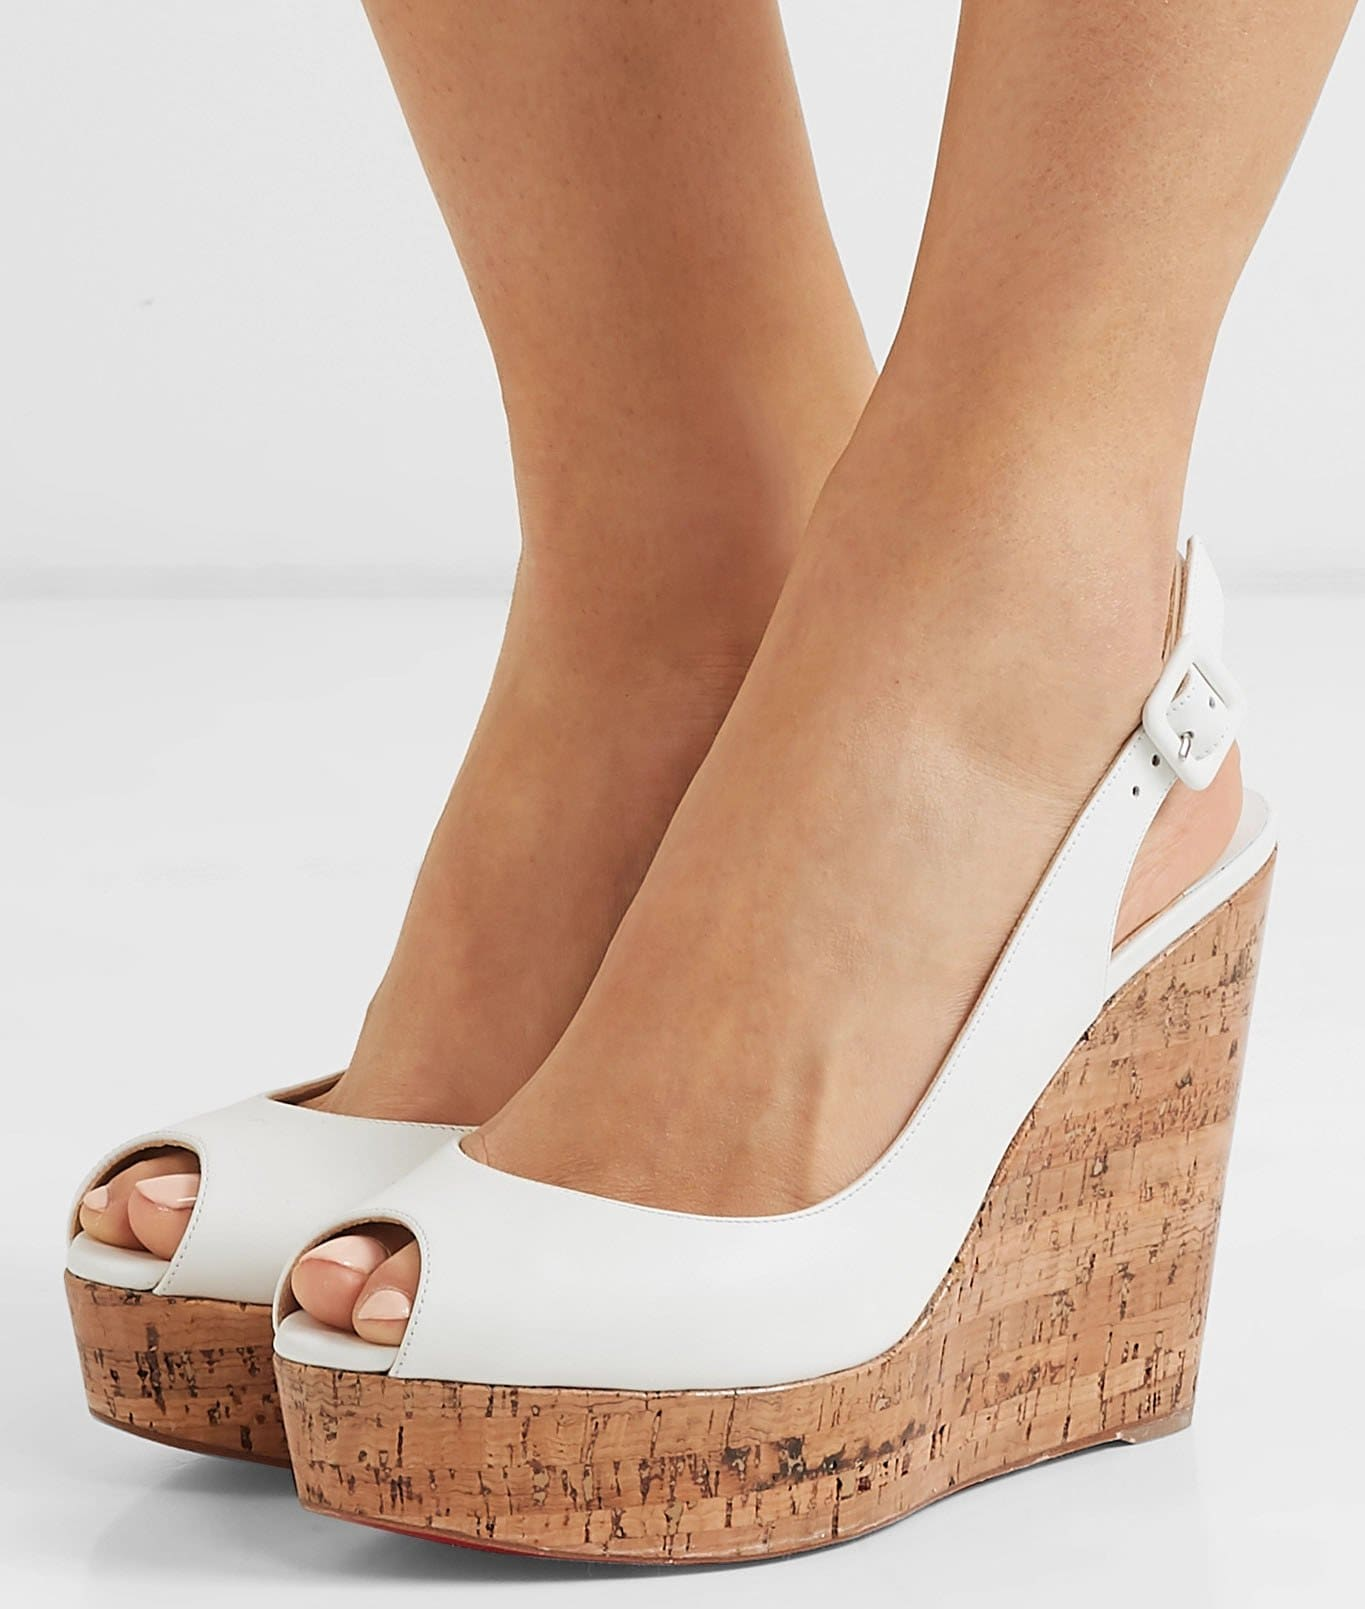 Cork wedge sandals are the most common style of wedge shoes and most popular during spring and summer